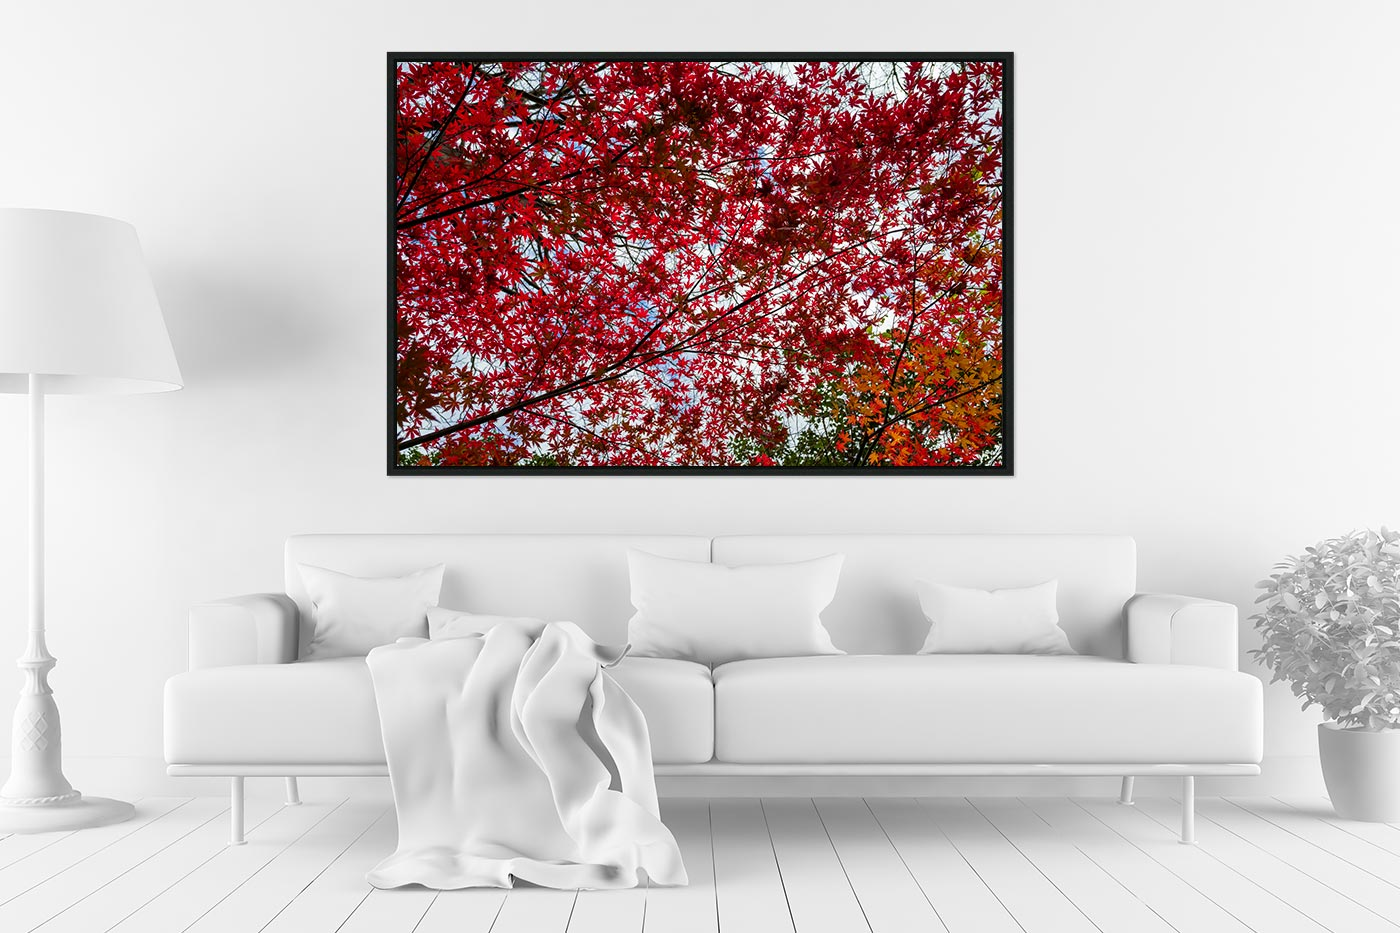 Caisse americaine 80x120 Small red tree leaves